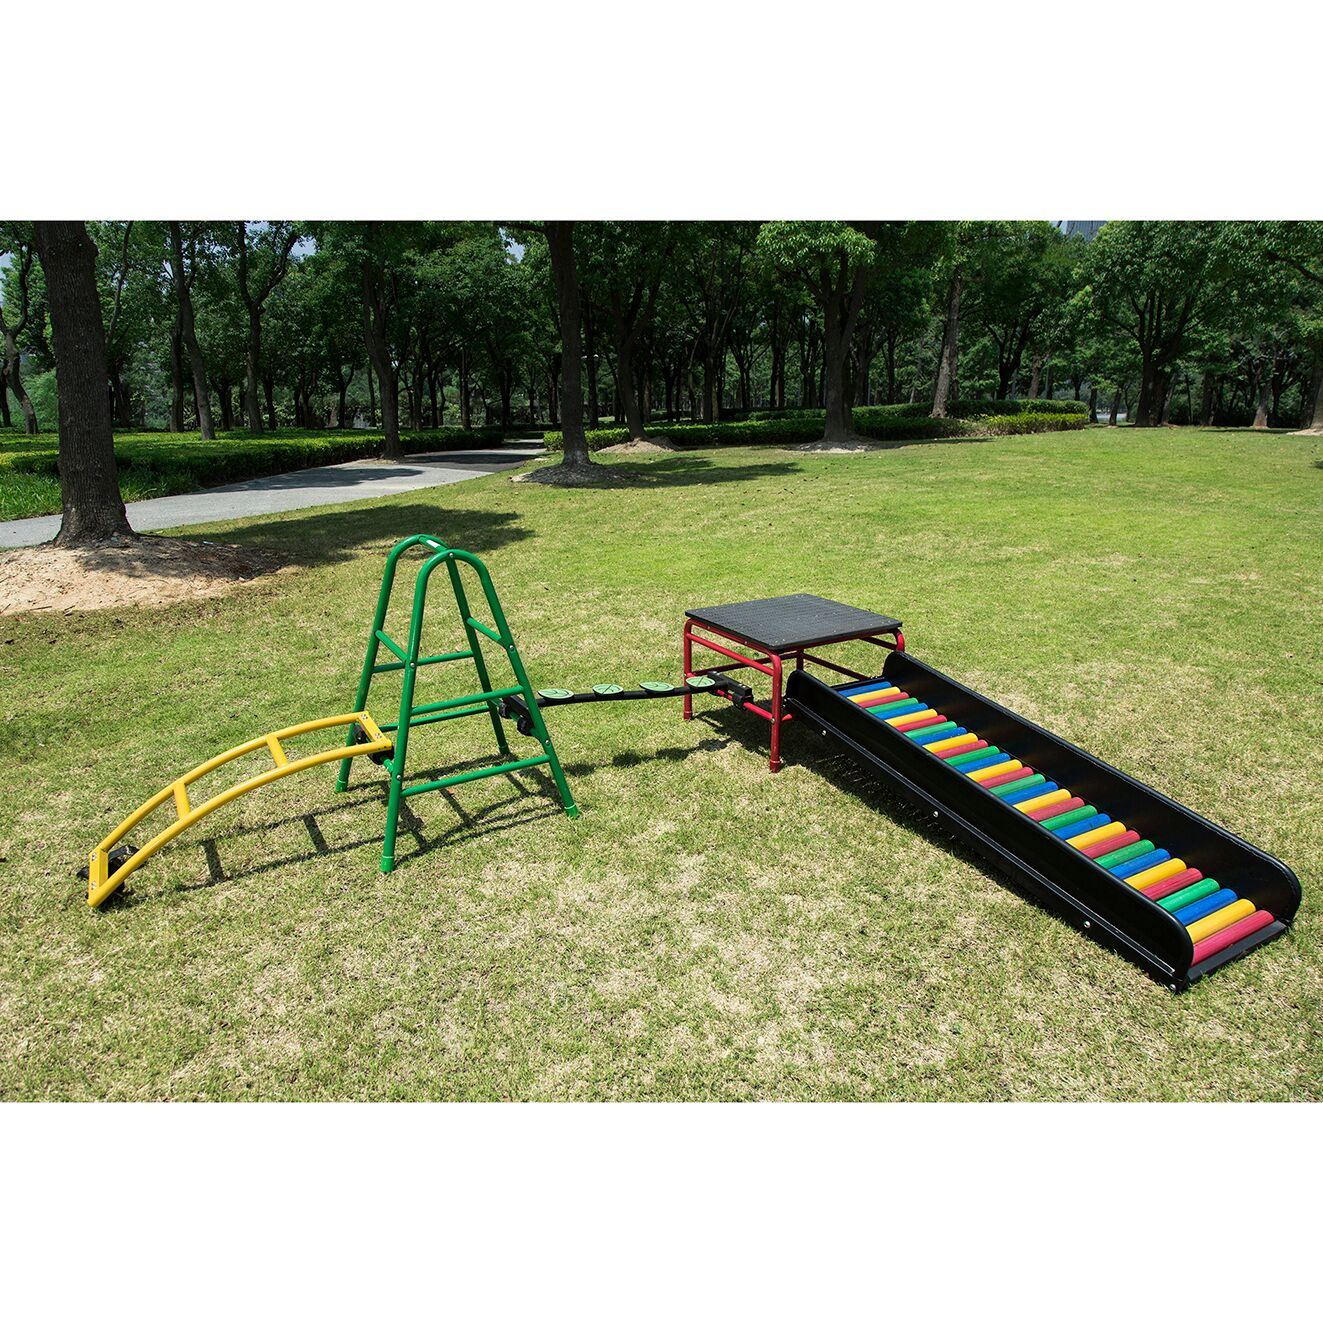 Play Gym Set 8  (Arch Walkway- Trestle 600- Stepping Leaves- Square Platform- Slide)